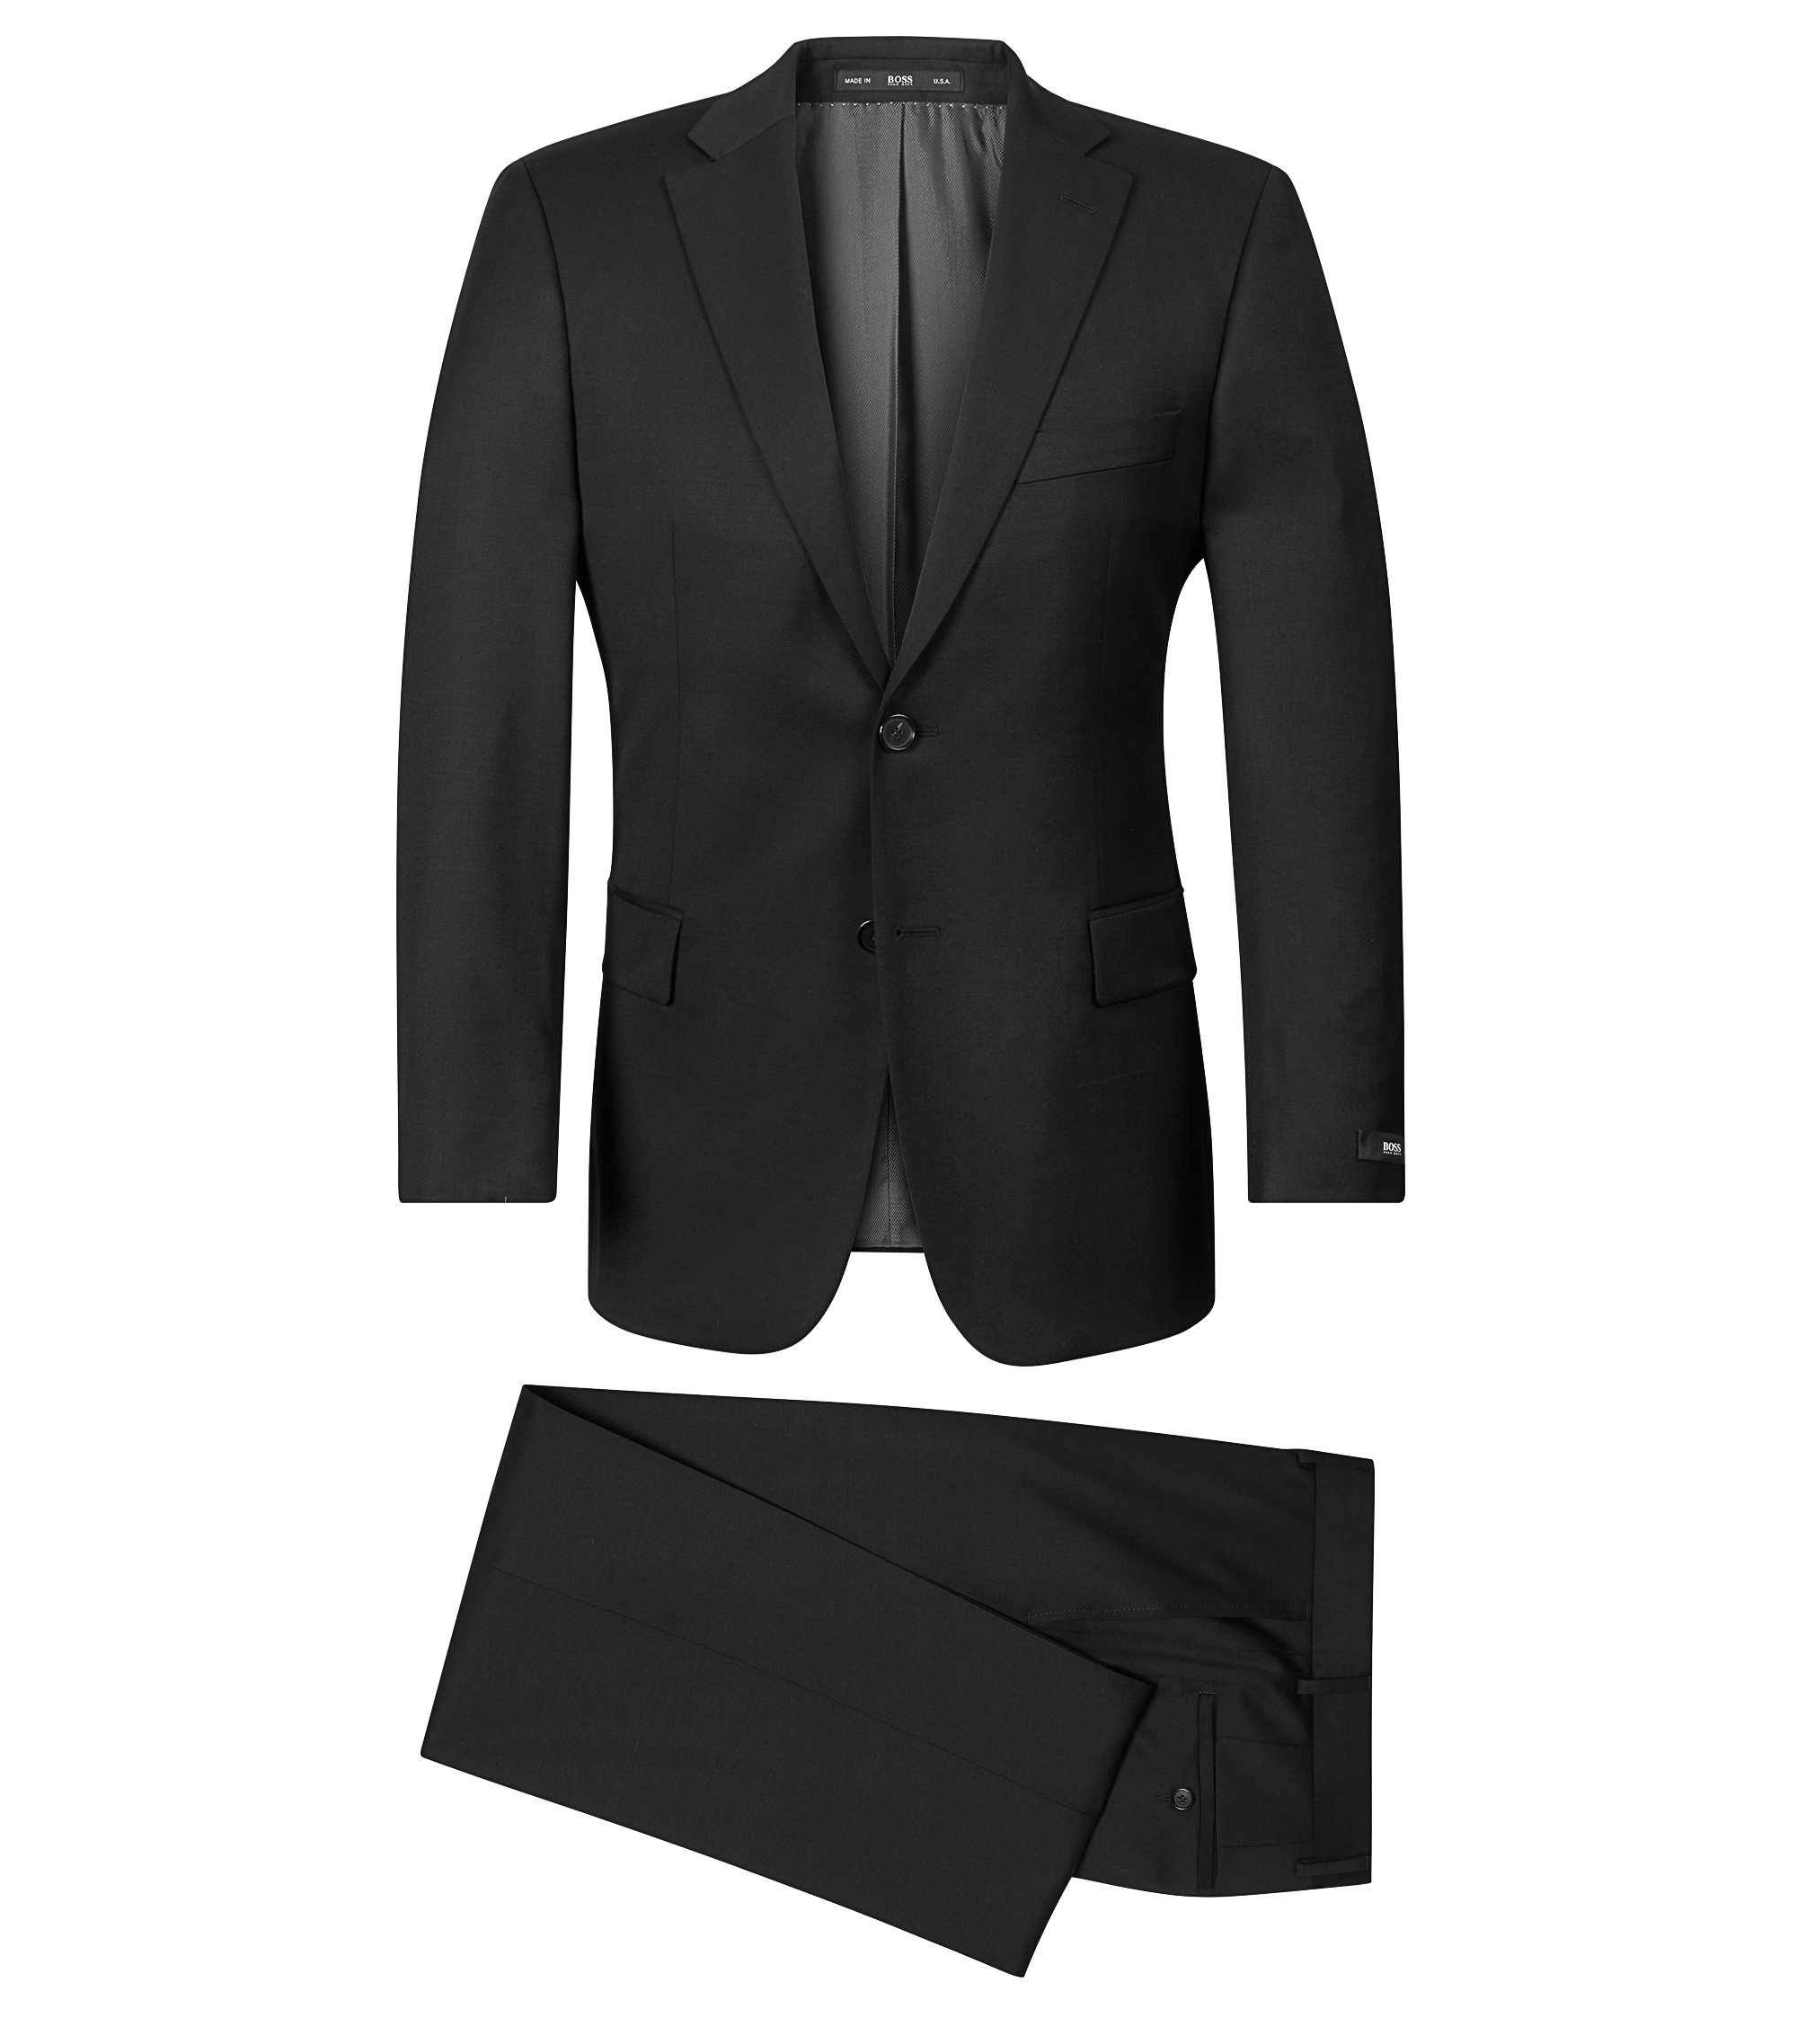 Super 100 Virgin Wool Suit, Comfort Fit | Pasolini/Movie, Black